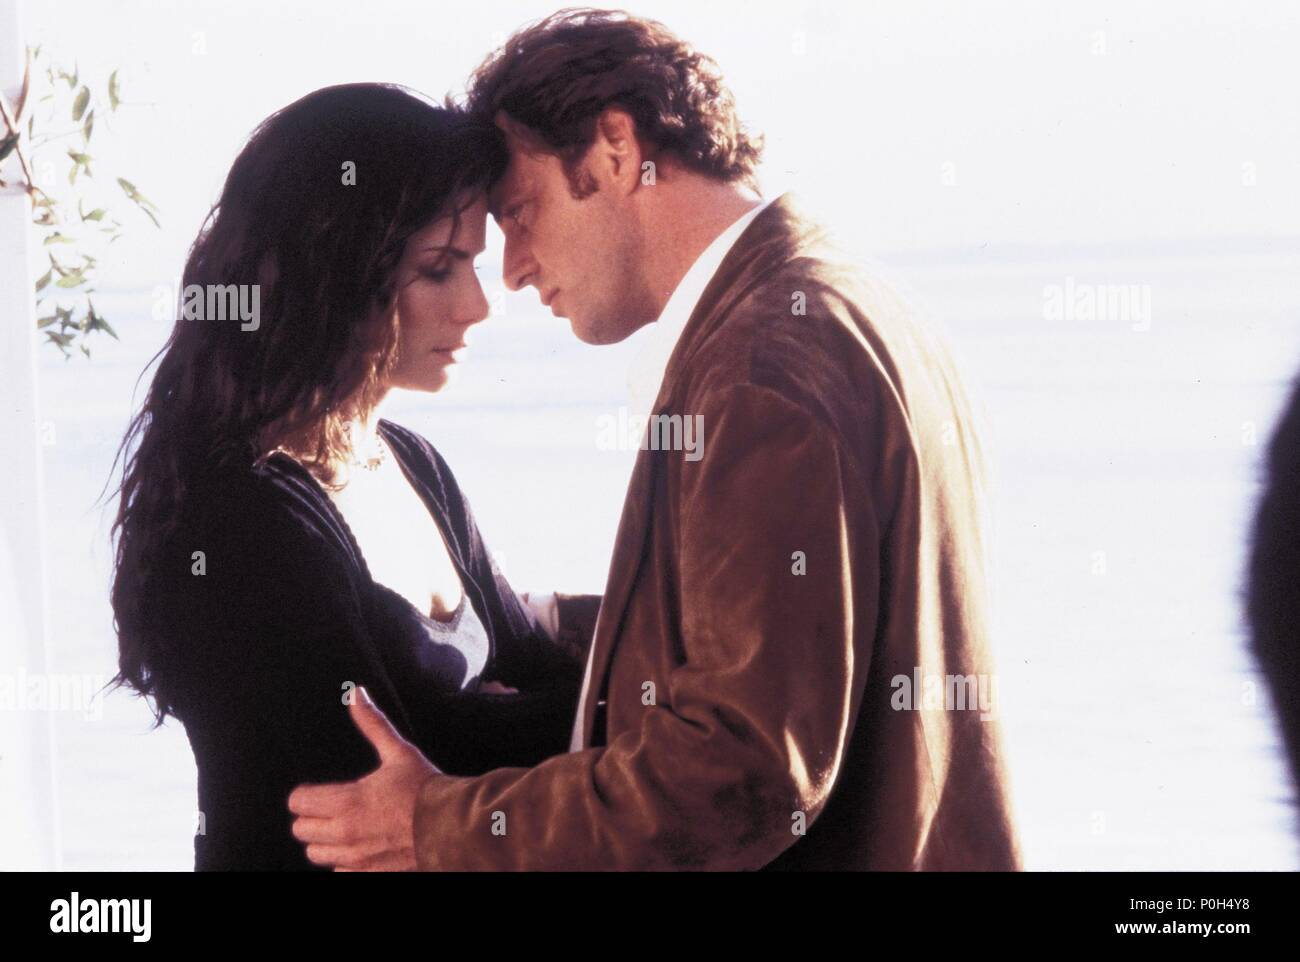 Original Film Title: PRACTICAL MAGIC.  English Title: PRACTICAL MAGIC.  Film Director: GRIFFIN DUNNE.  Year: 1998.  Stars: AIDAN QUINN; SANDRA BULLOCK. Credit: WARNER BROTHERS / TENNER, SUZANNE / Album - Stock Image